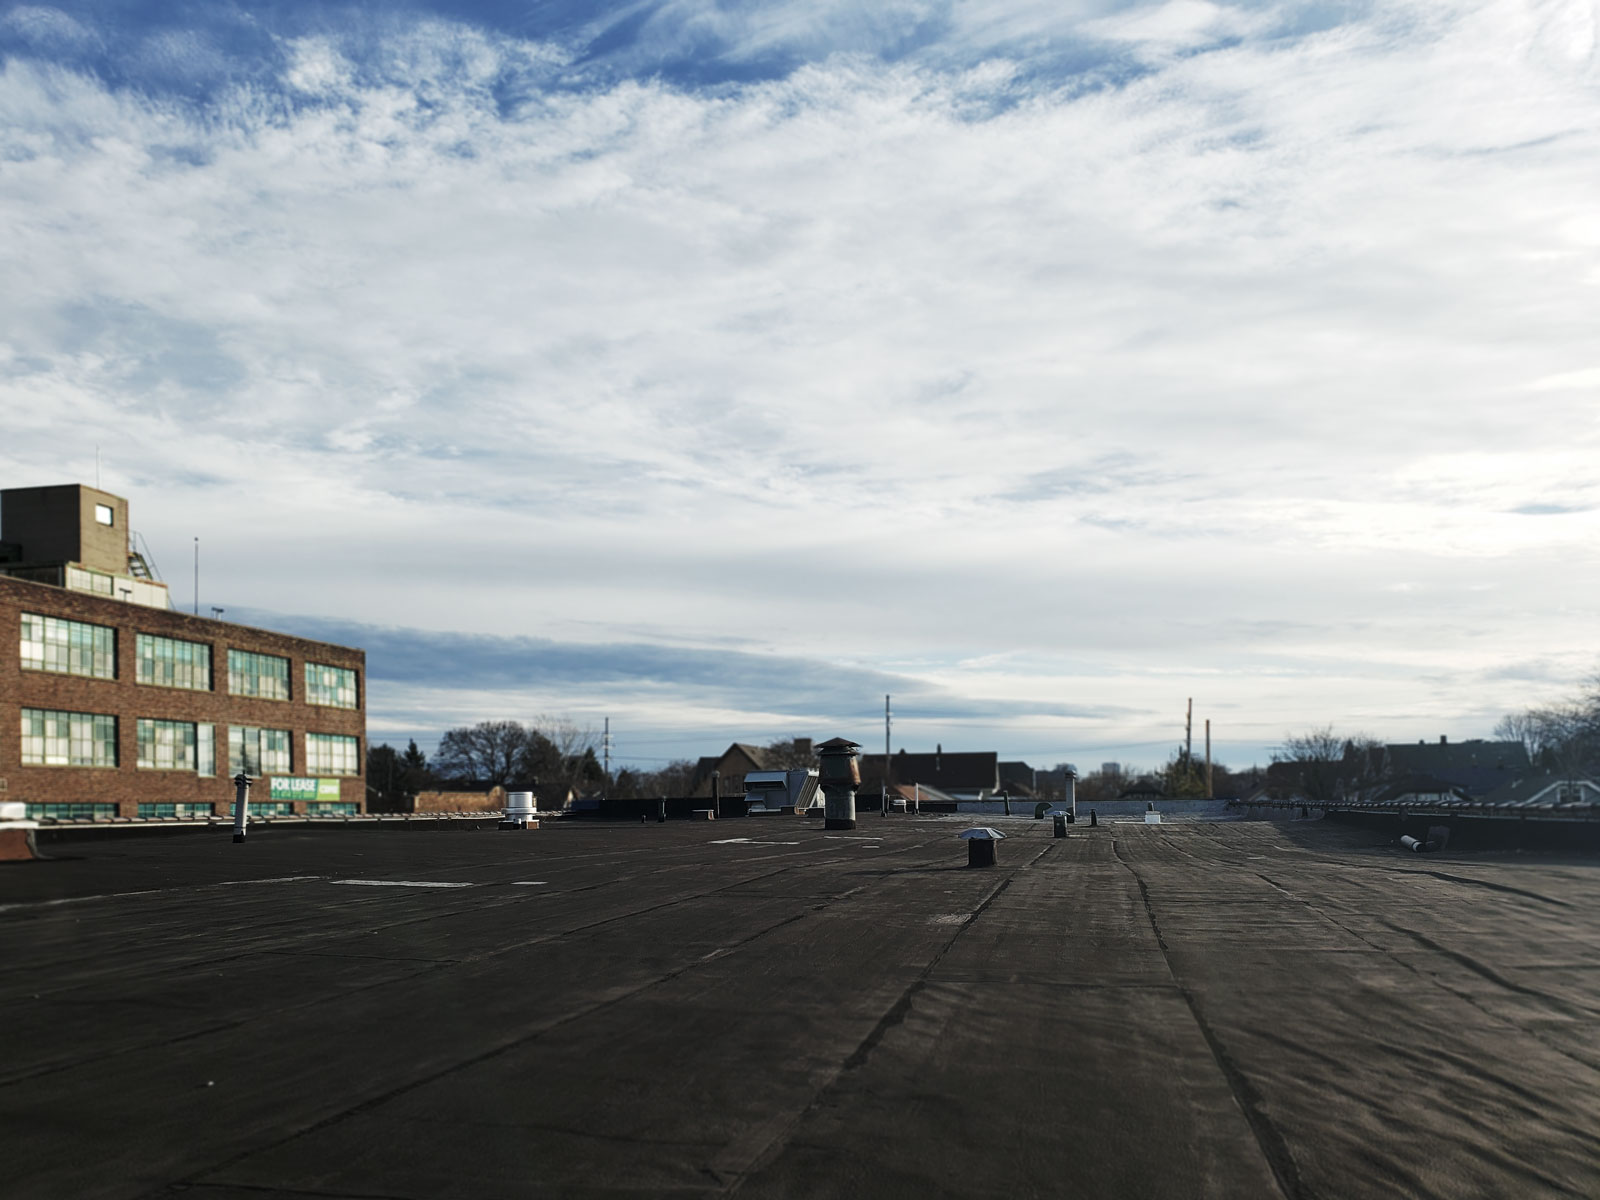 An open, empty rooftop.